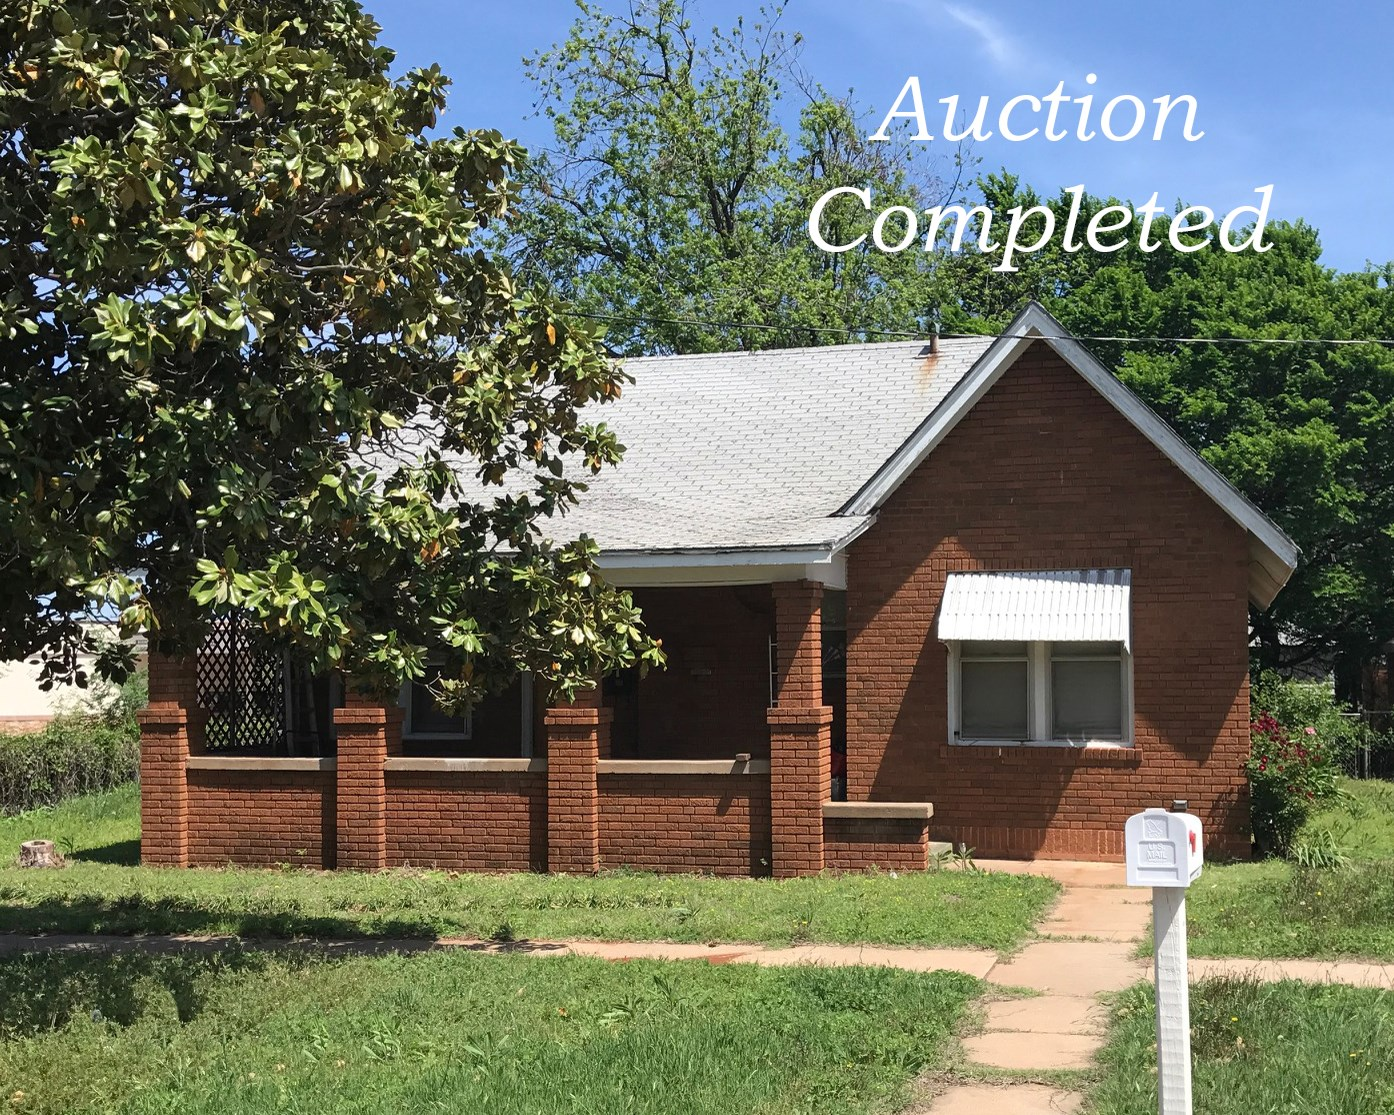 Home for Sale, Clinton, OK 115 S 11th